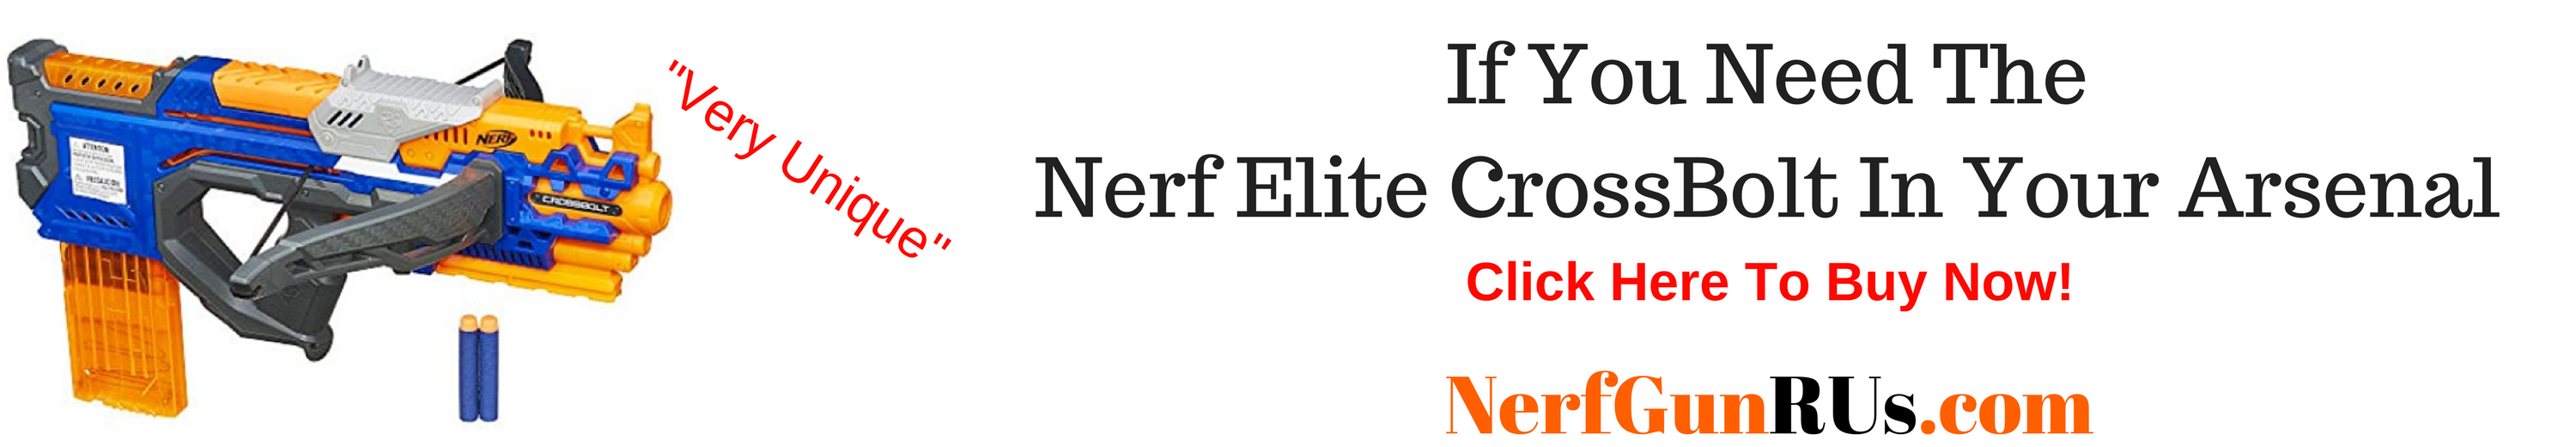 If You Need The Nerf CrossBolt in Your Aresenal | NerfGunRUs.com